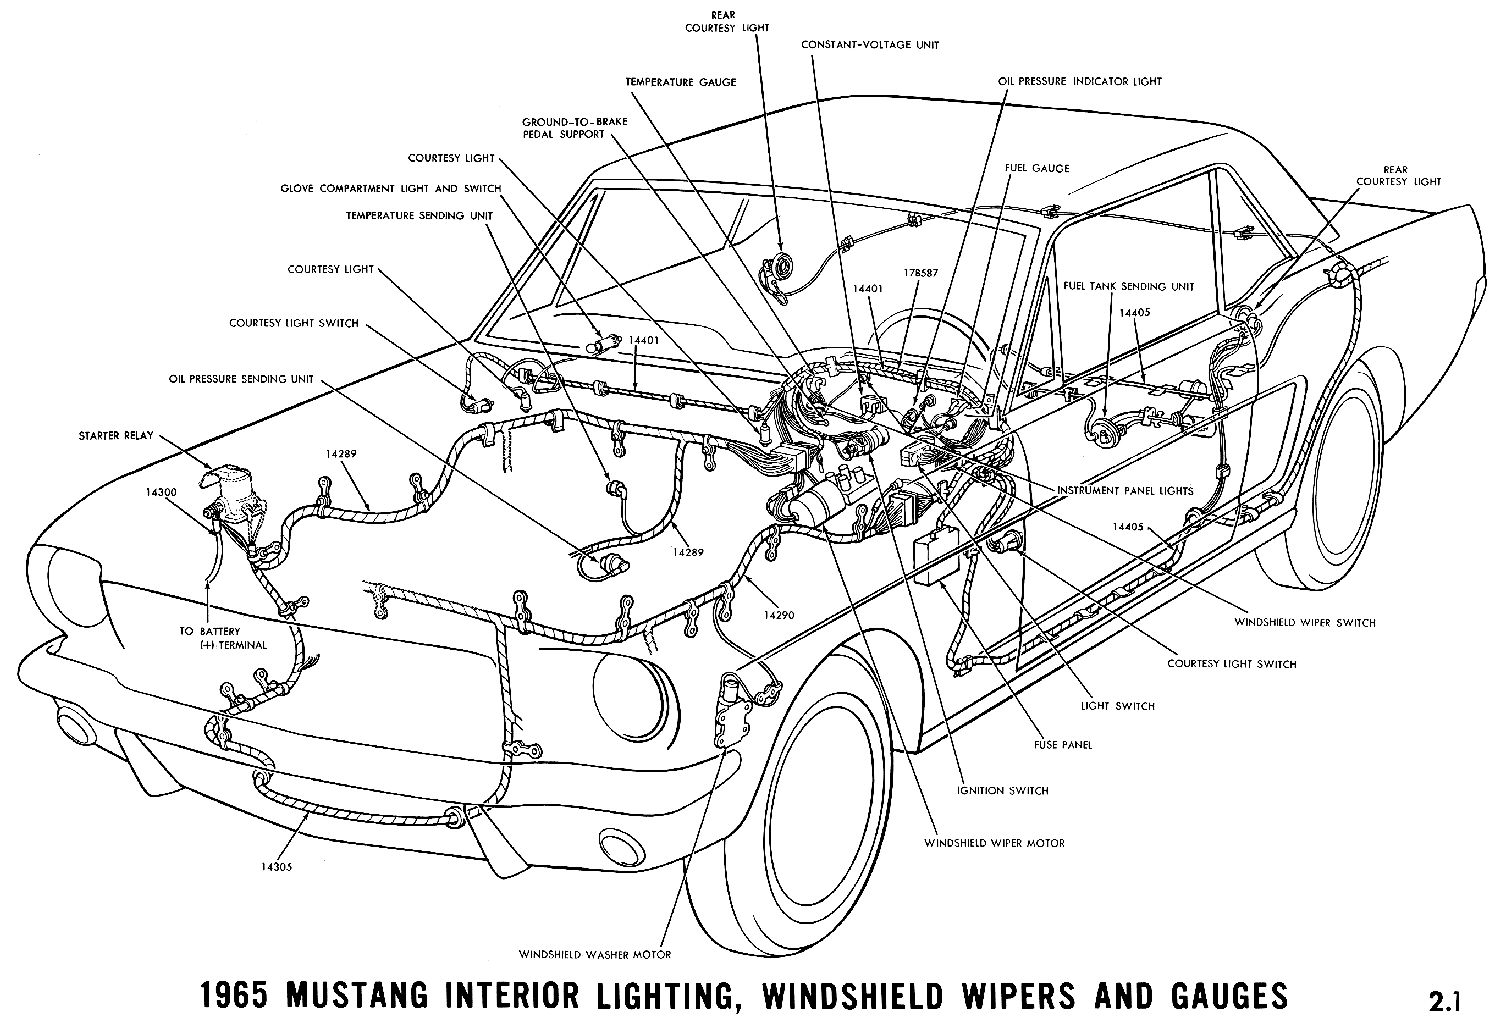 1965 Mustang Wiring Diagrams Average Joe Restoration Harley Oil Pressure Gauge Diagram Free Download 1965f Interior Lights Windshield Wiper And Gauges Pictorial Or Schematic